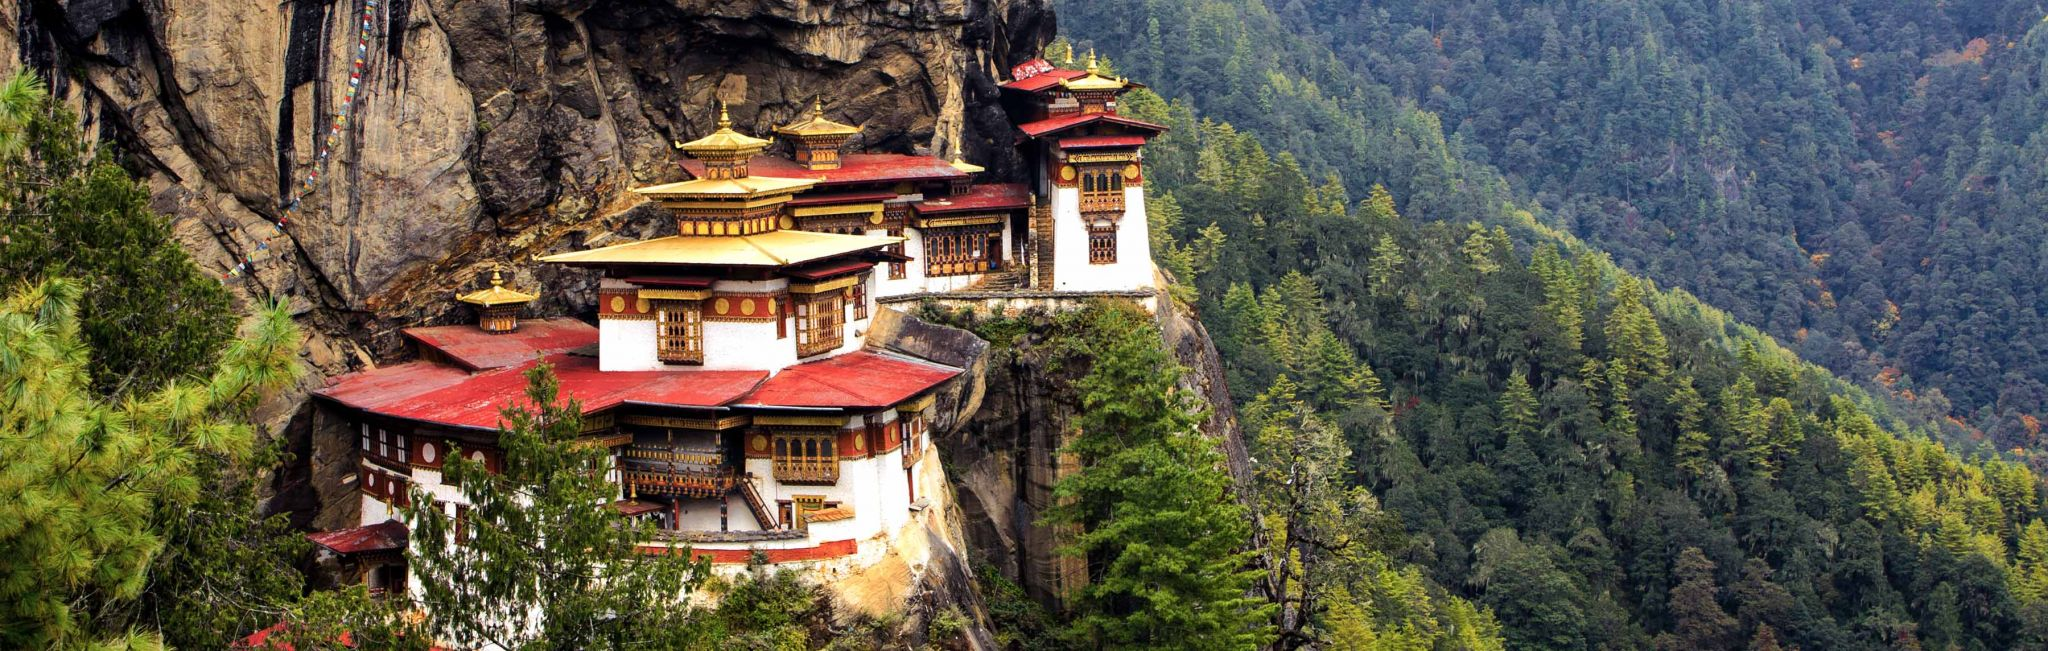 The Tigers Nest Monastry in the Himalayas of Bhutan.